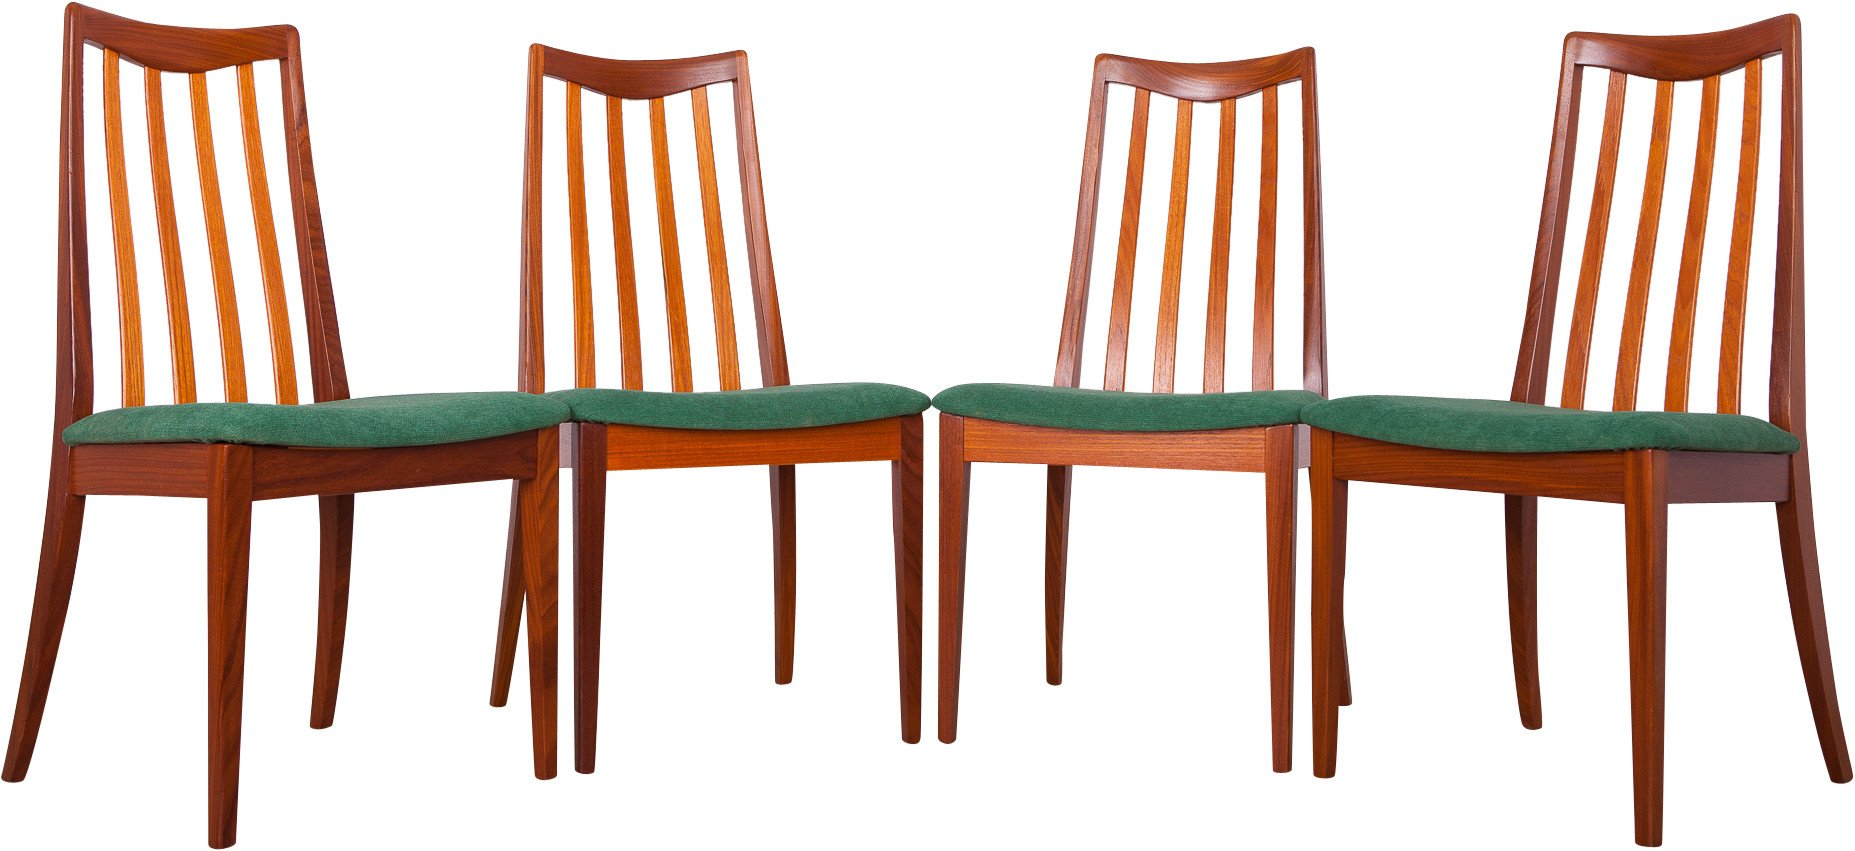 Set of Four Chairs by L. Dandy for G-Plan, United Kingdom, 1960s